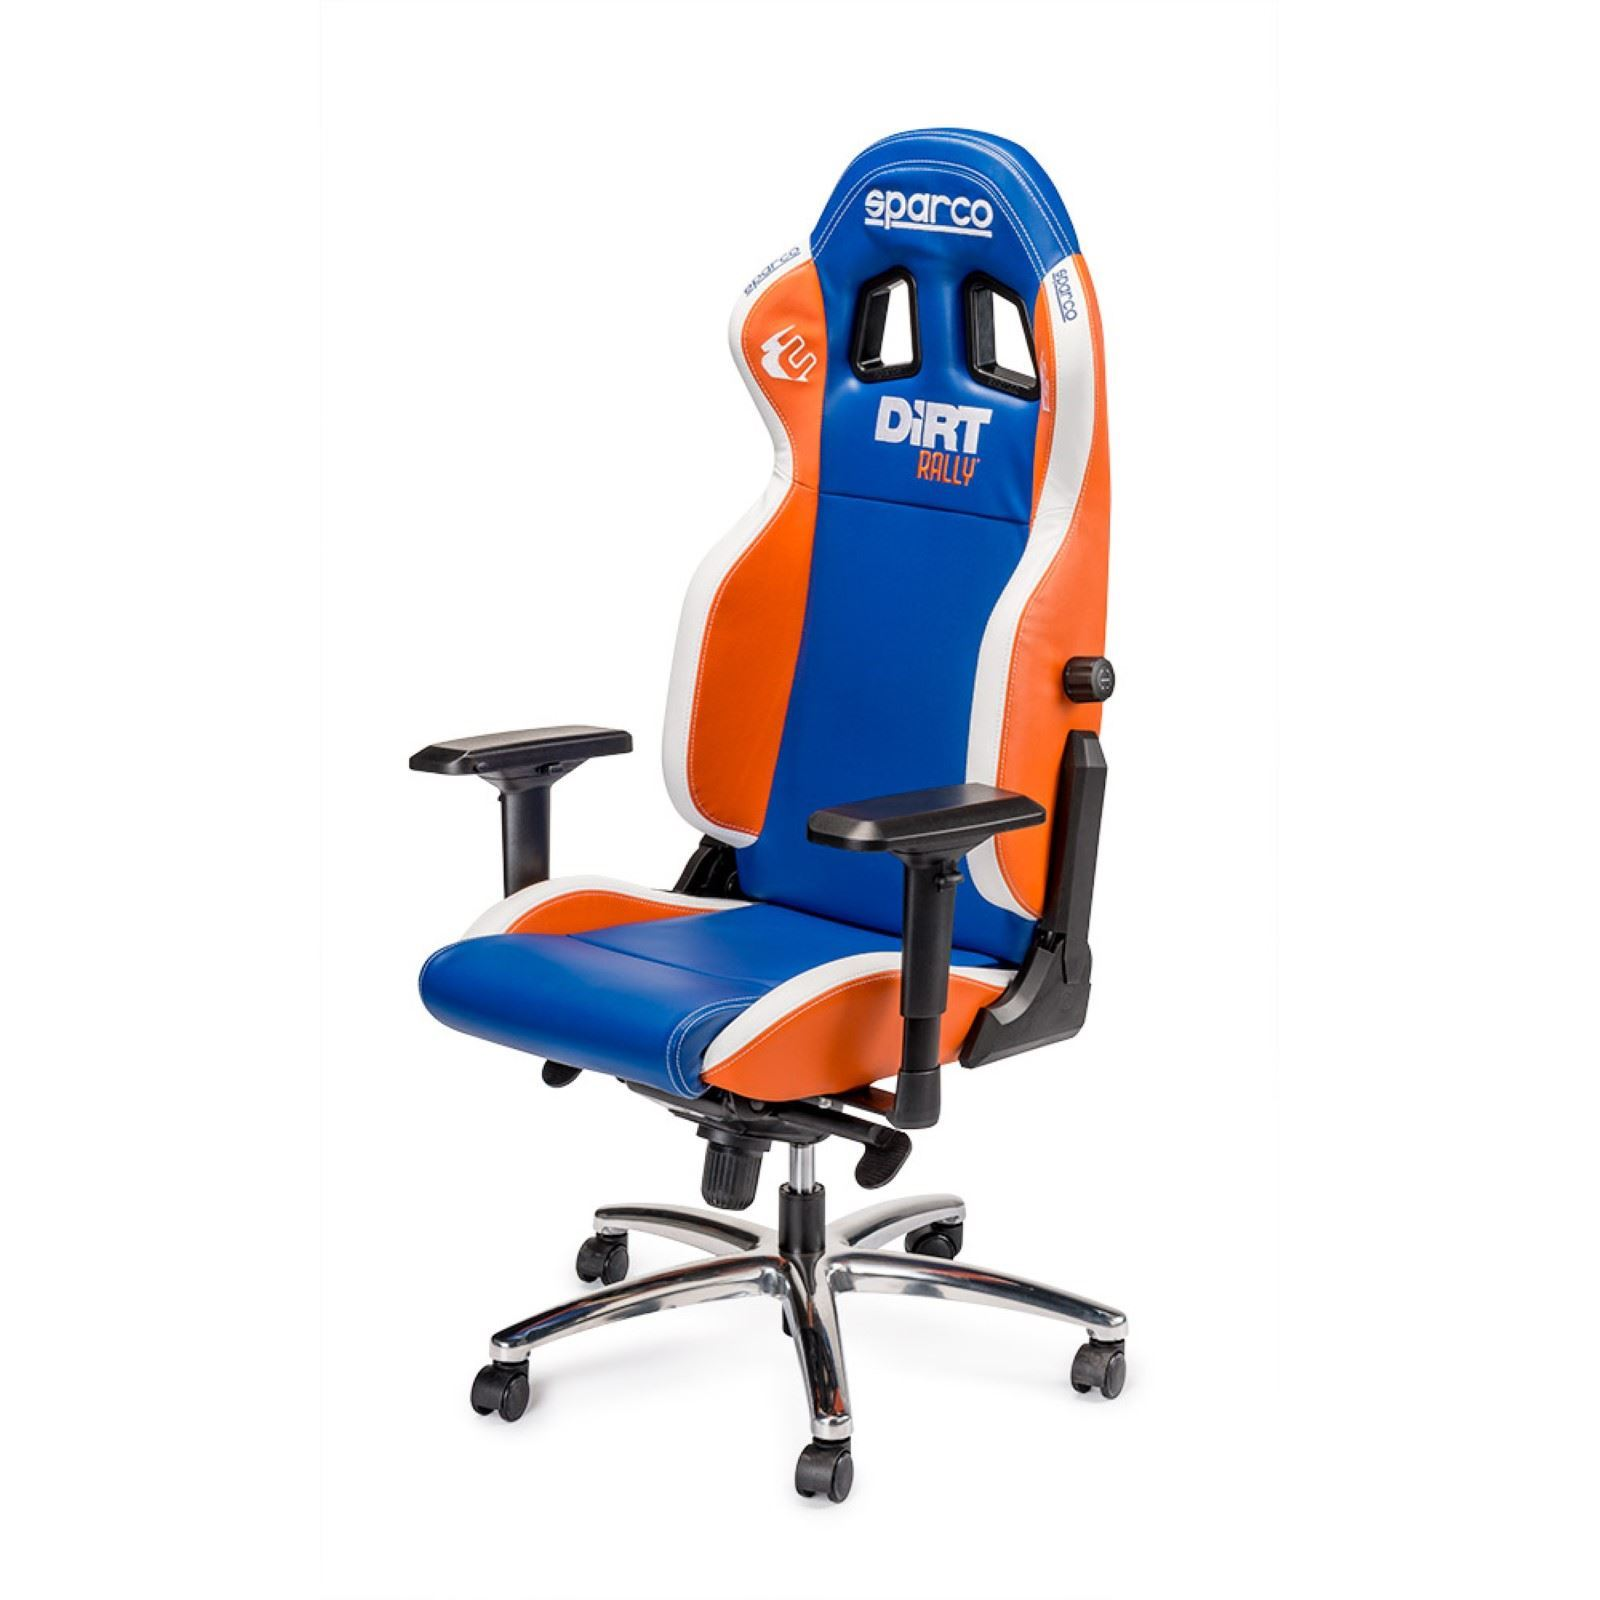 sparco office chair sofa bed ikea usa motorsports racing apparel and accessories